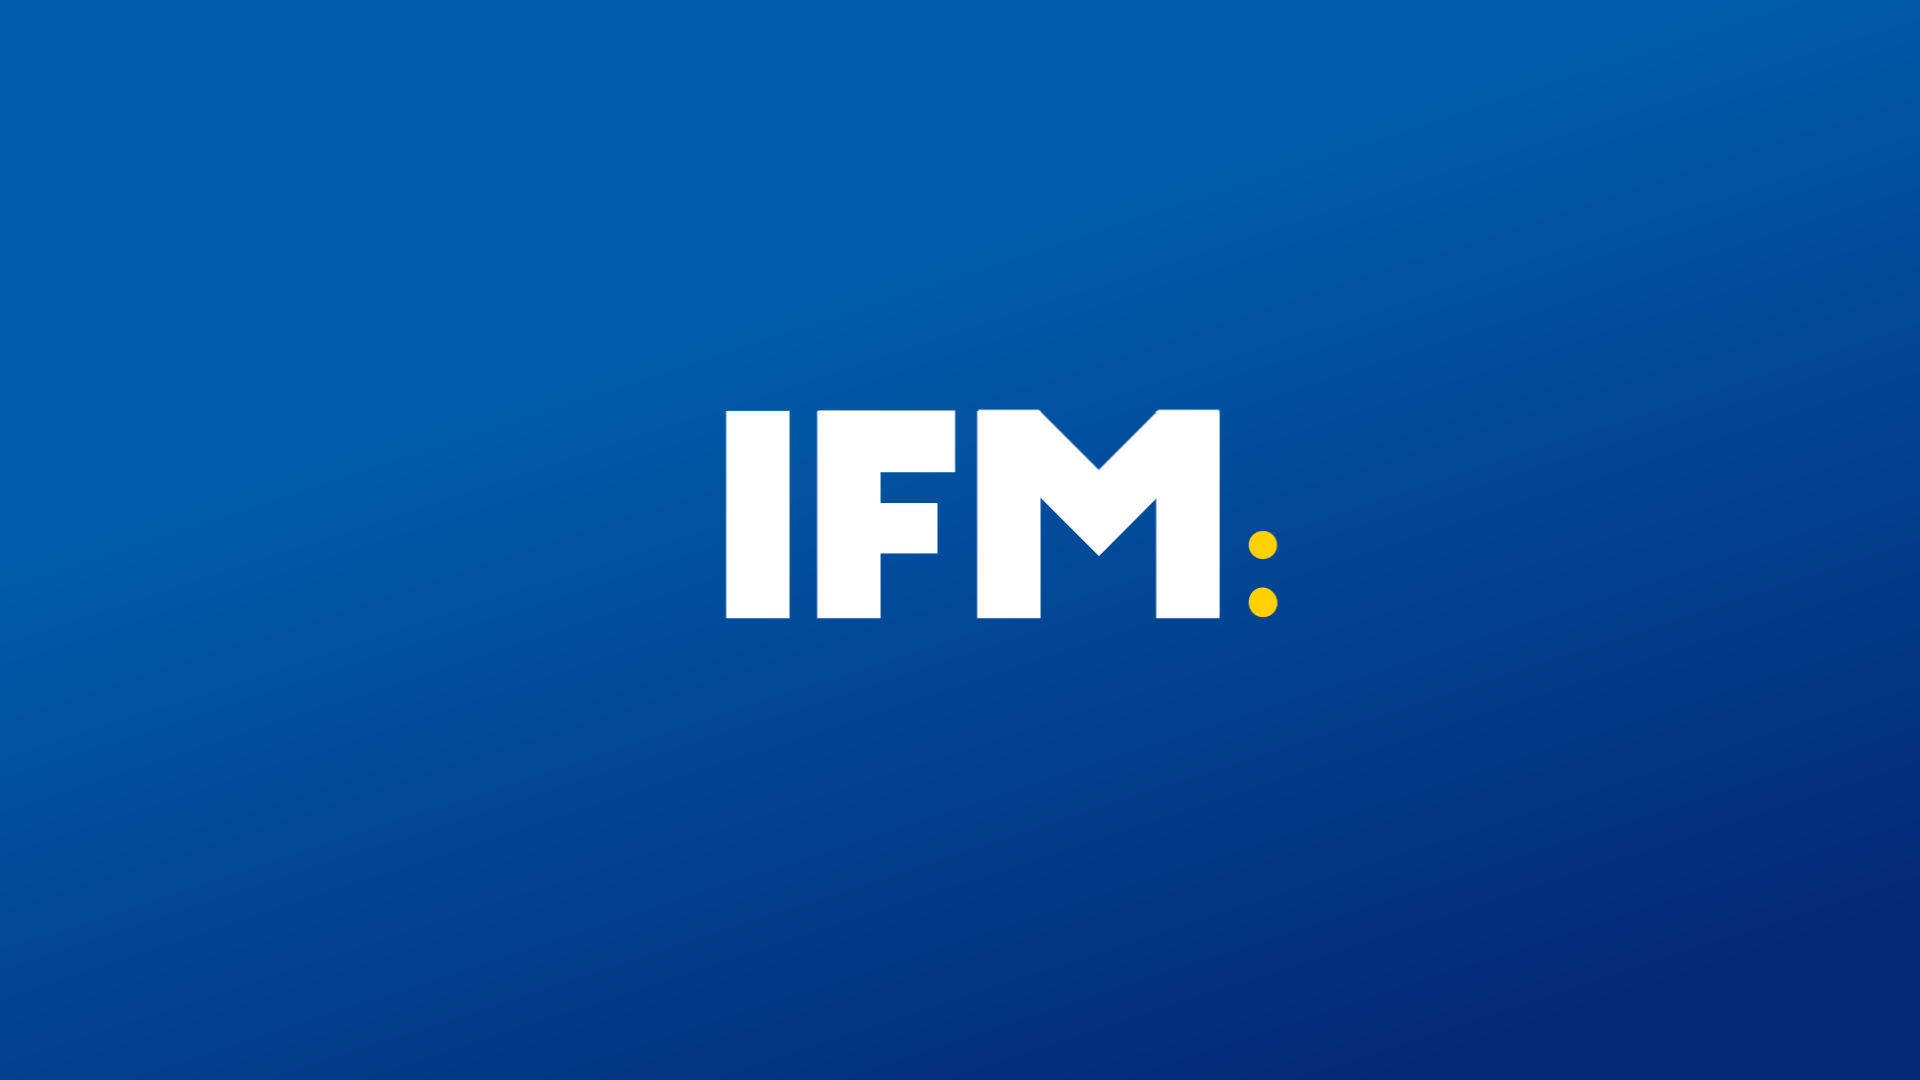 IFM ORIGINALS